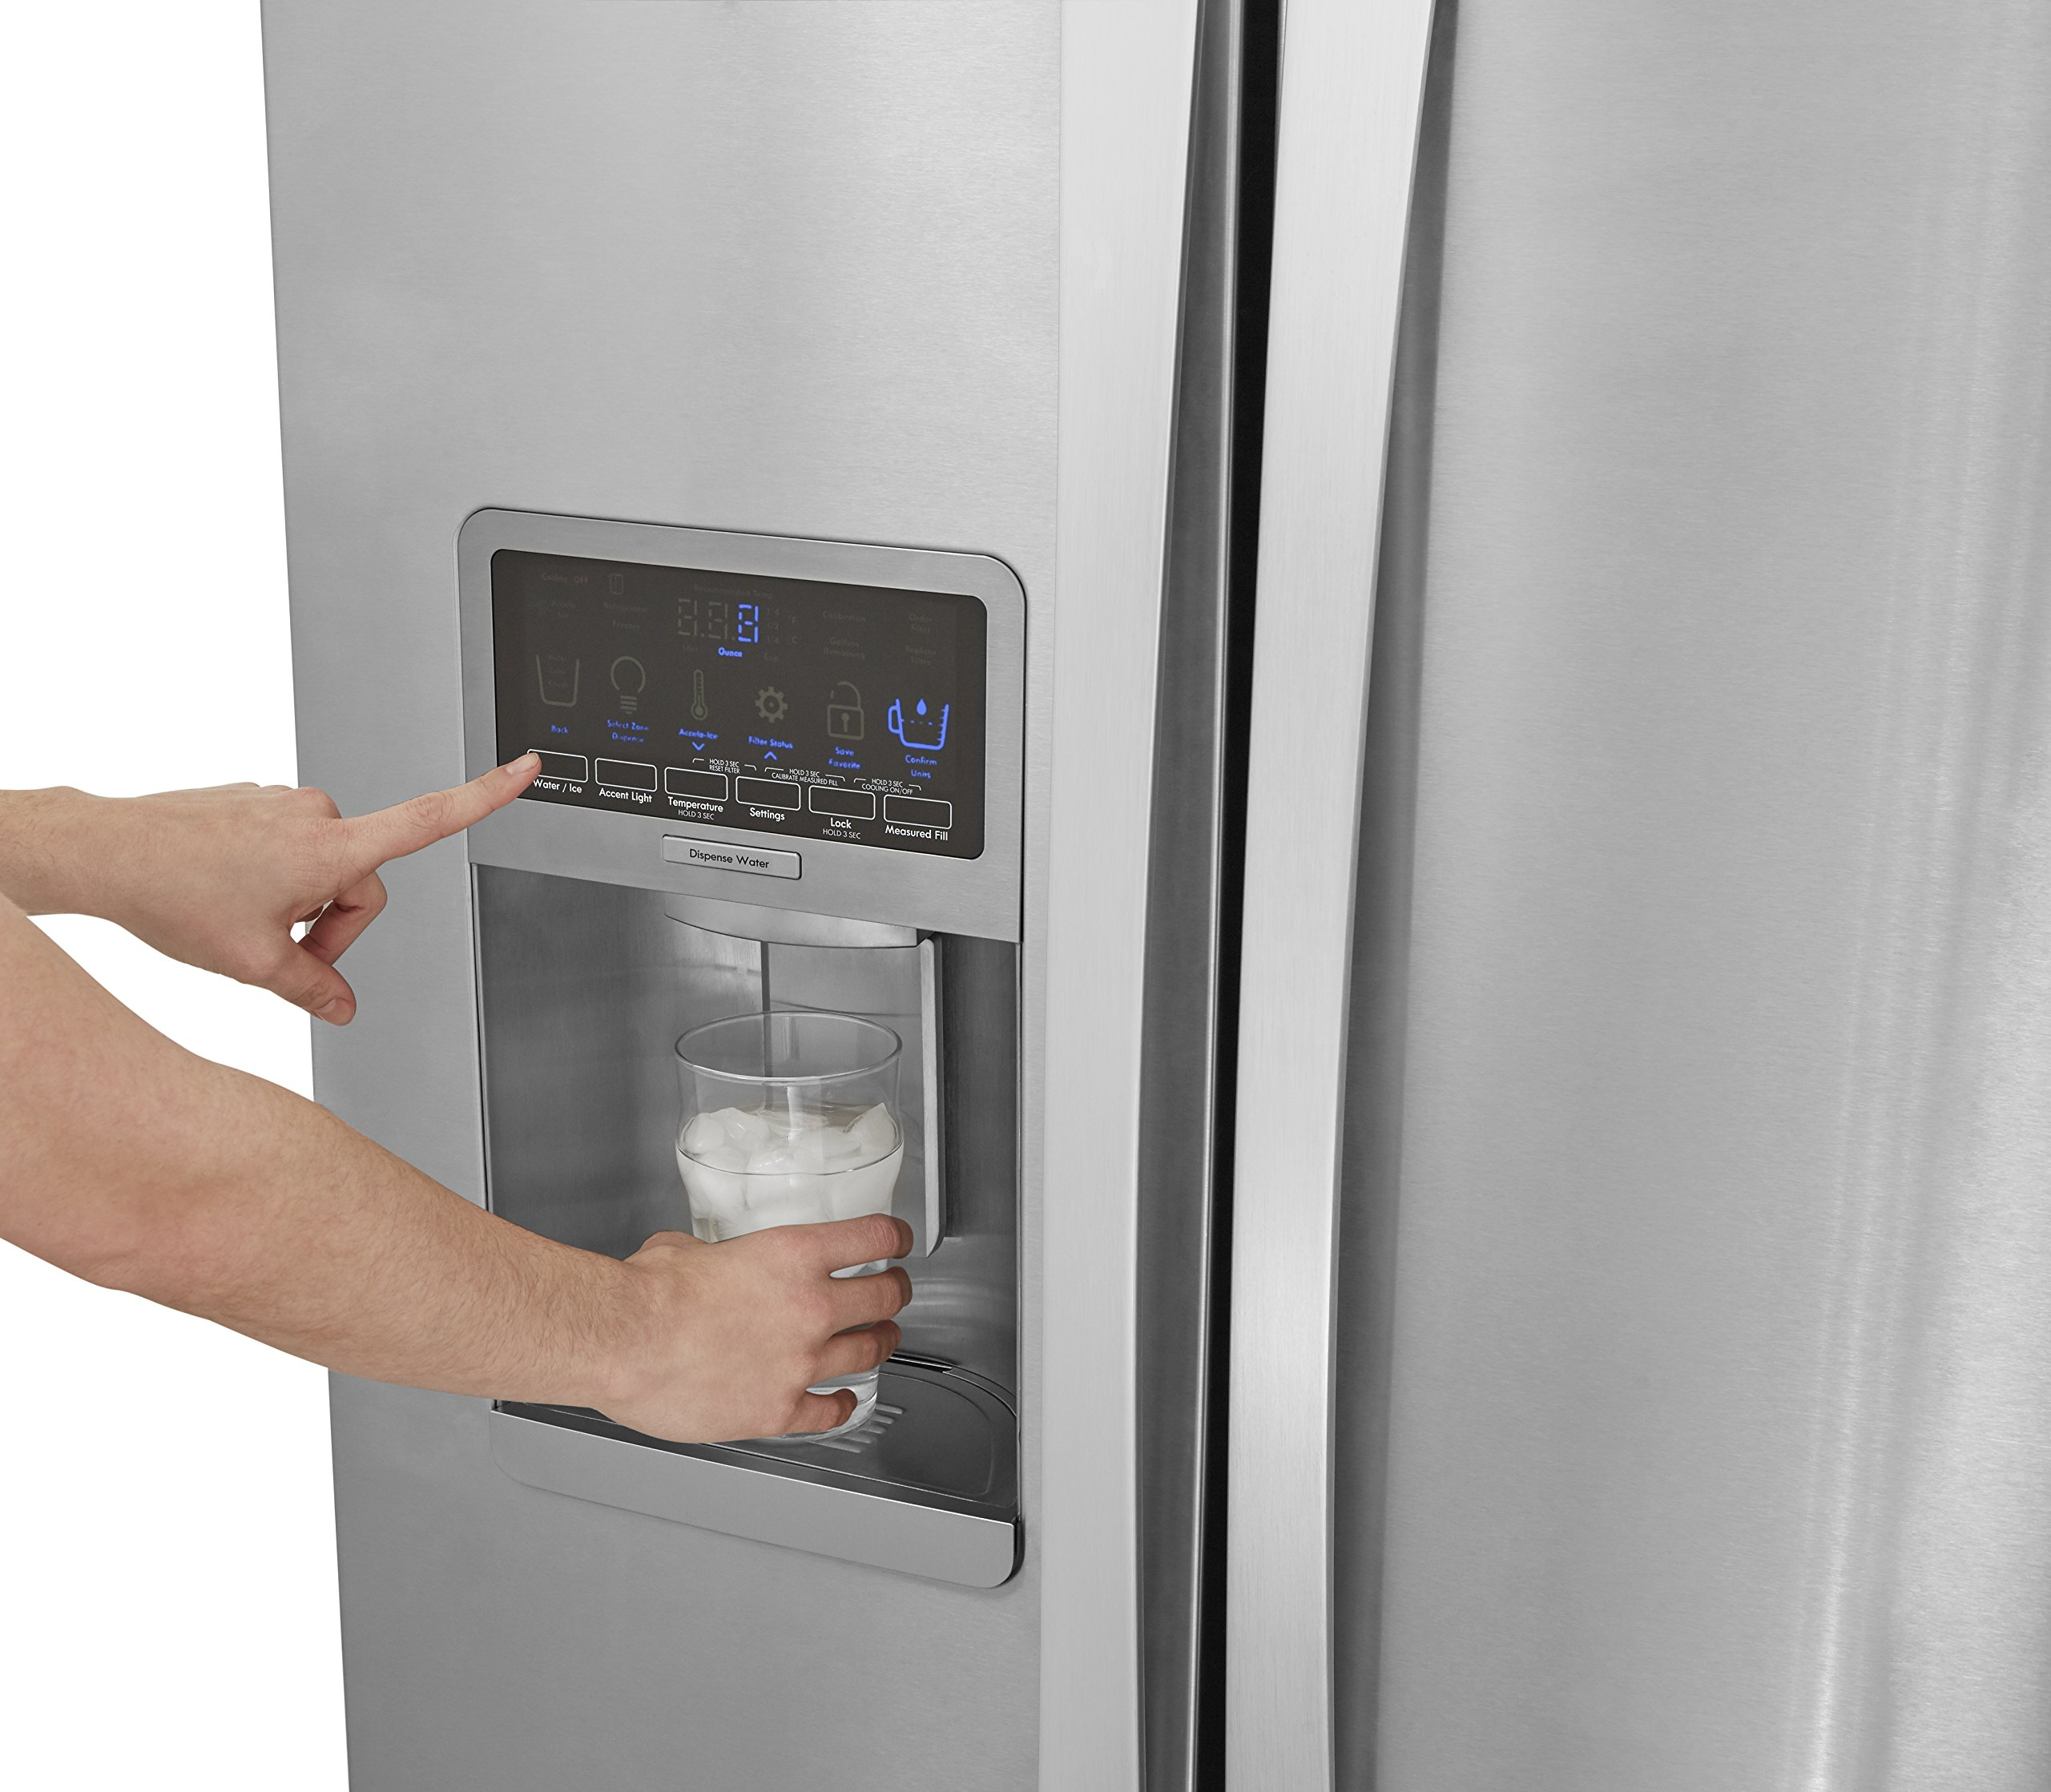 Kenmore Elite 51773 28 cu. ft. Side-by-Side Refrigerator with Accela Ice Technology in Stainless Steel, includes delivery and hookup (Available in select cities only) by Kenmore (Image #9)